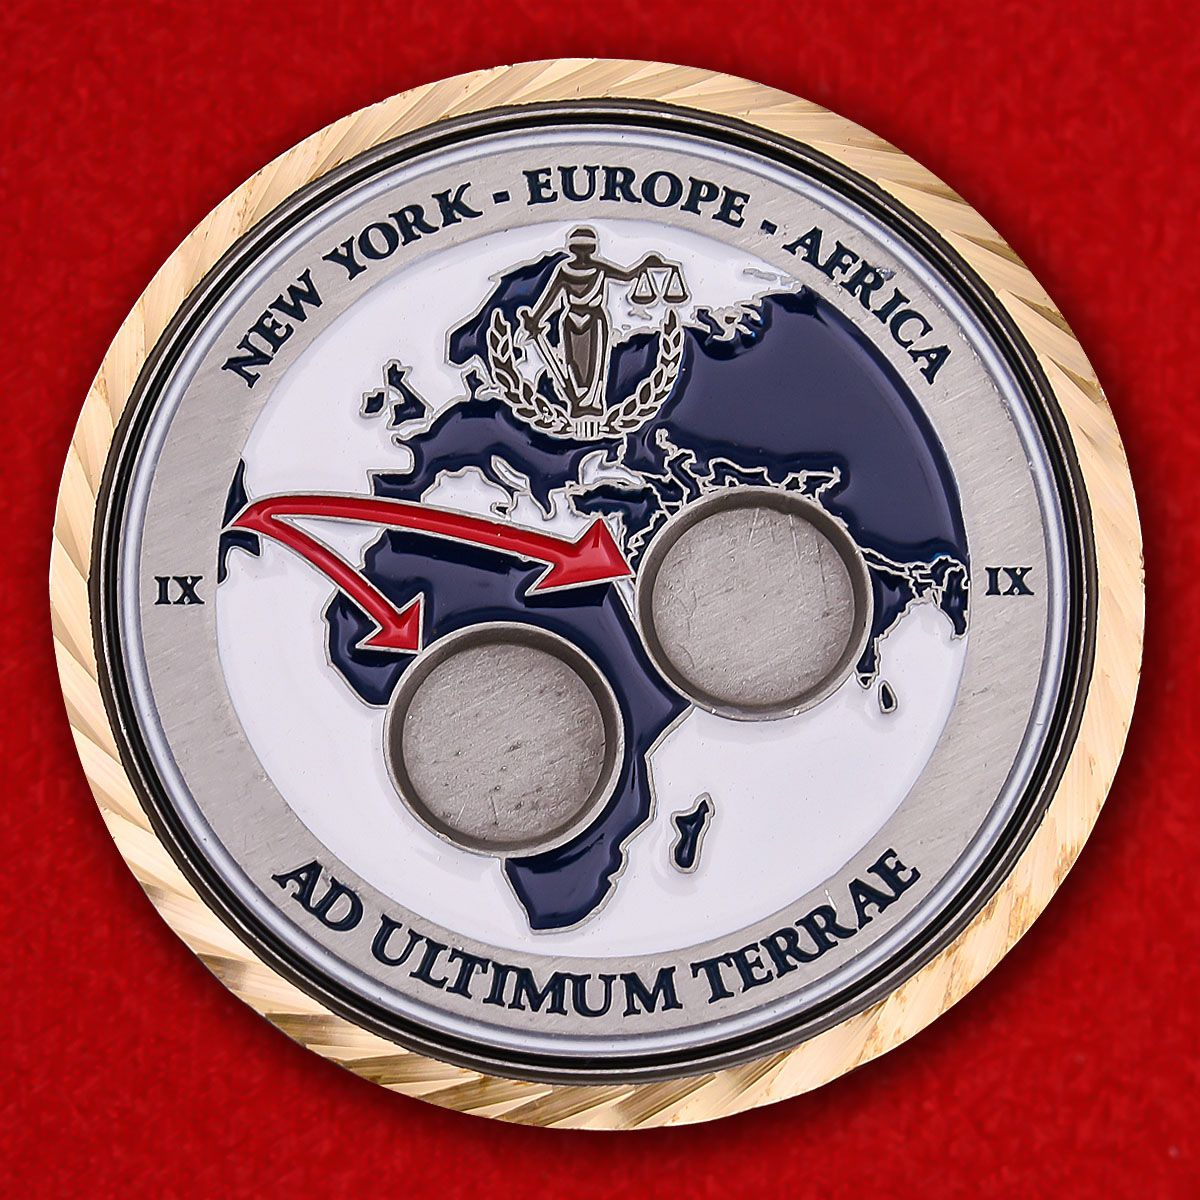 New York joint terrorism task force Challenge Coin